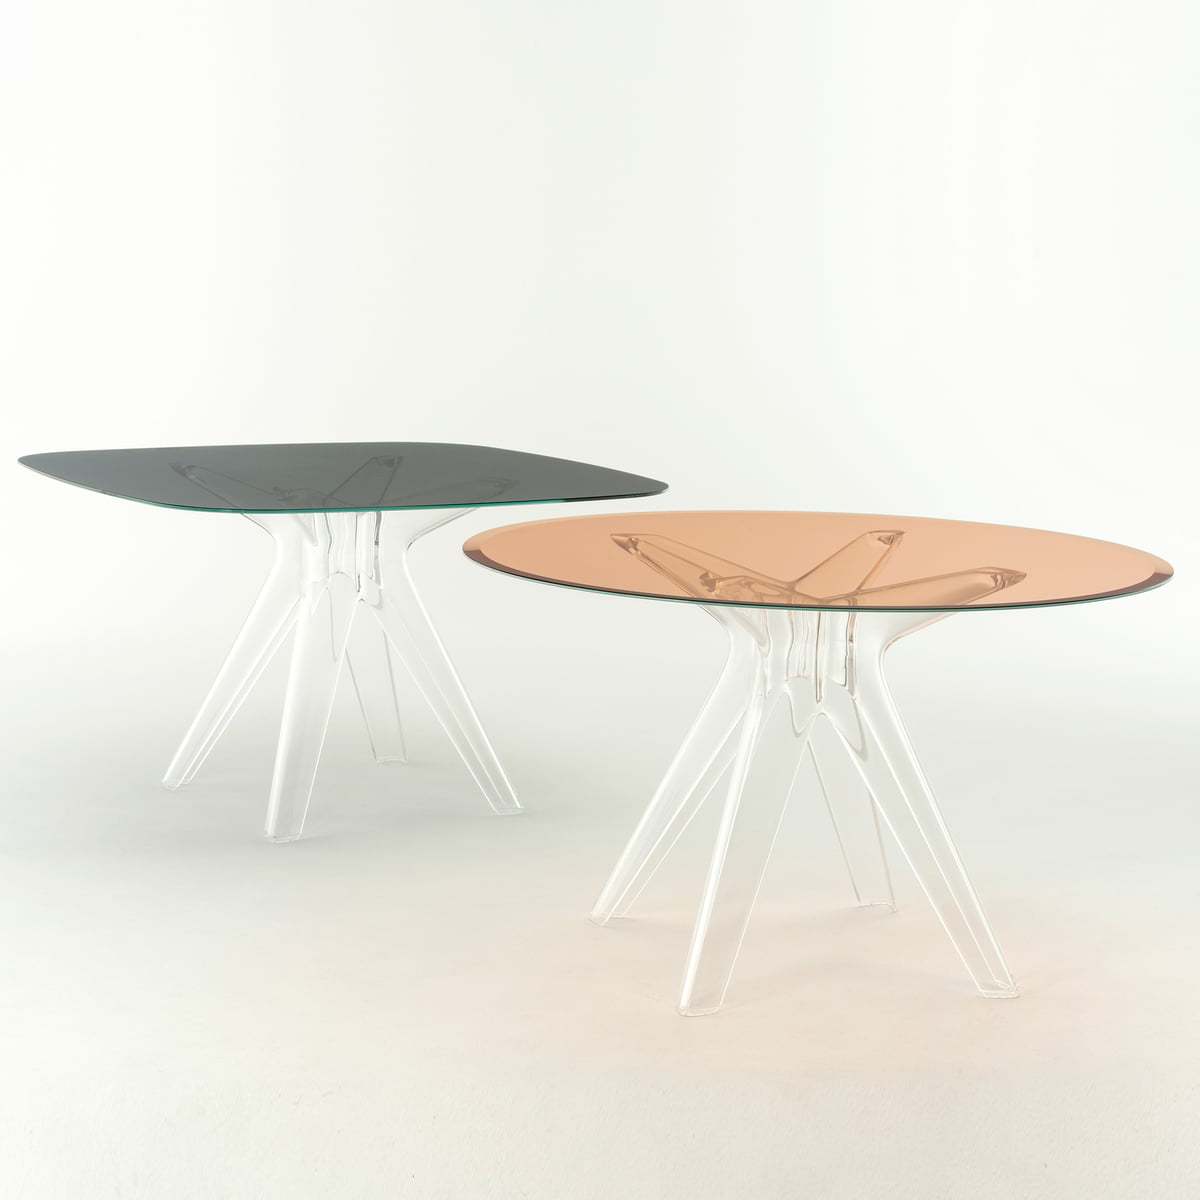 Philippe starck tisch 130 best kartell fly images on for Sessel quadratisch